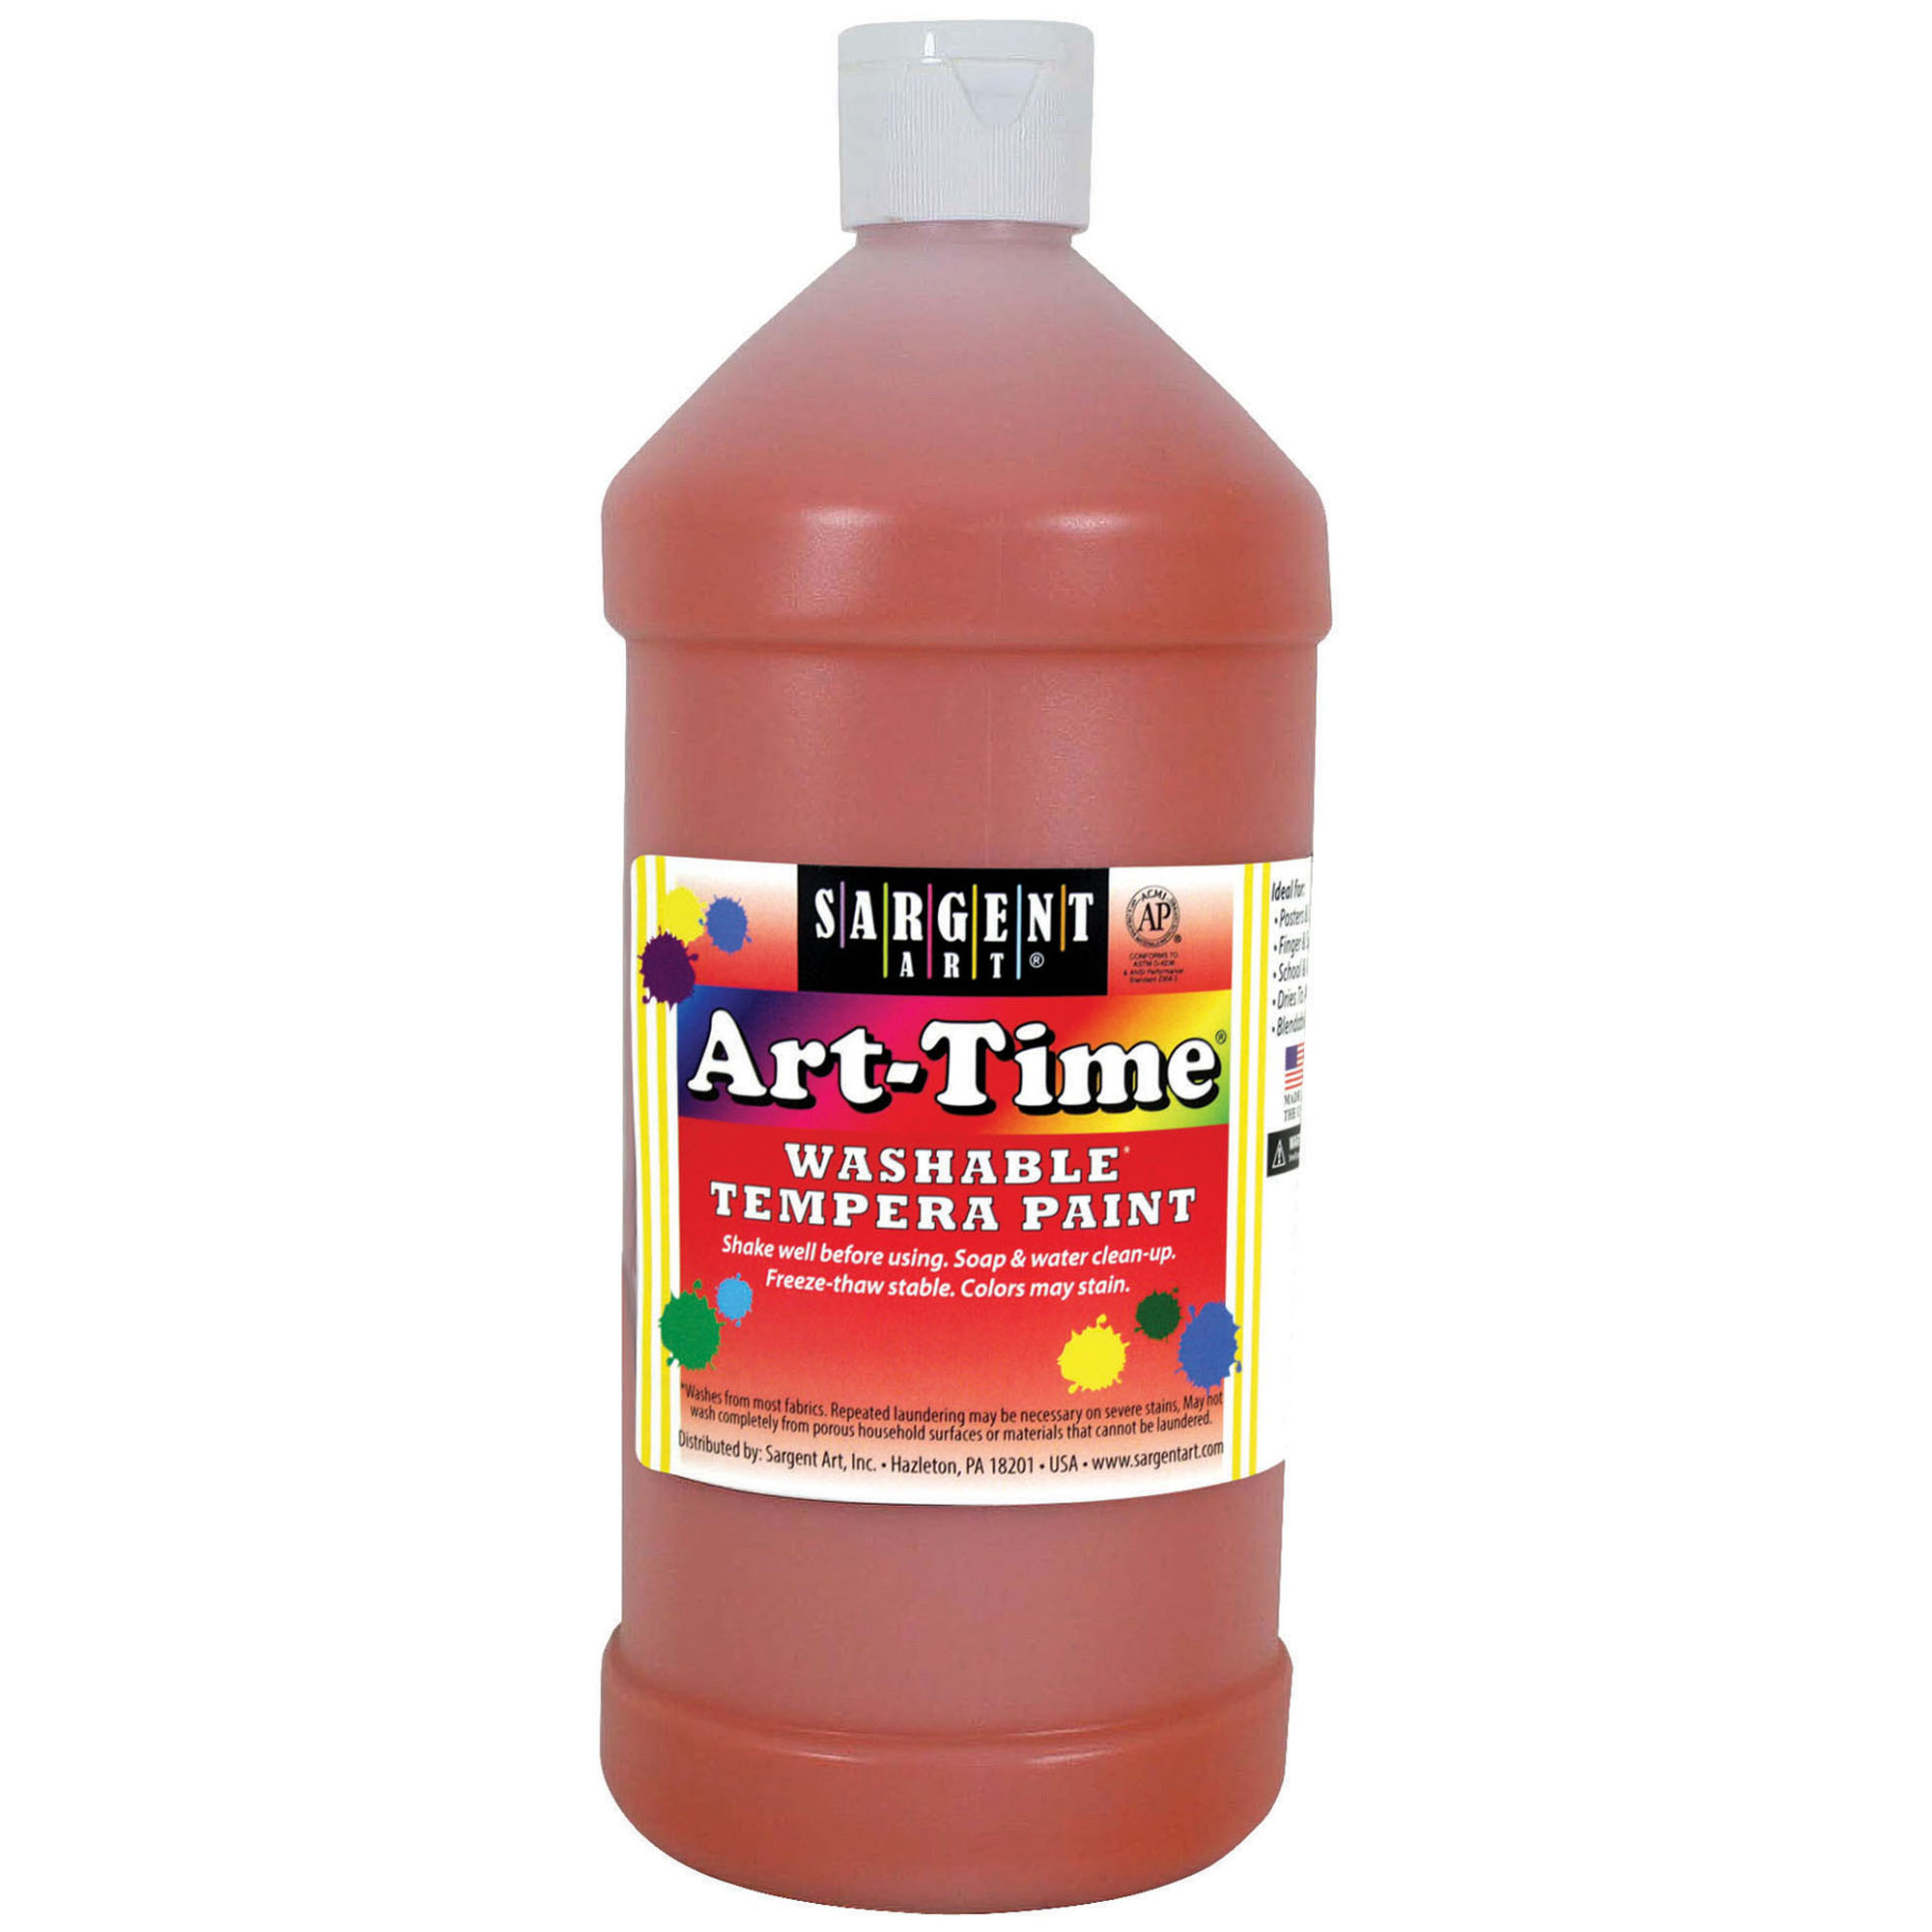 Art-Time® Washable Tempera Paint, Orange - 32 oz., 6/pkg